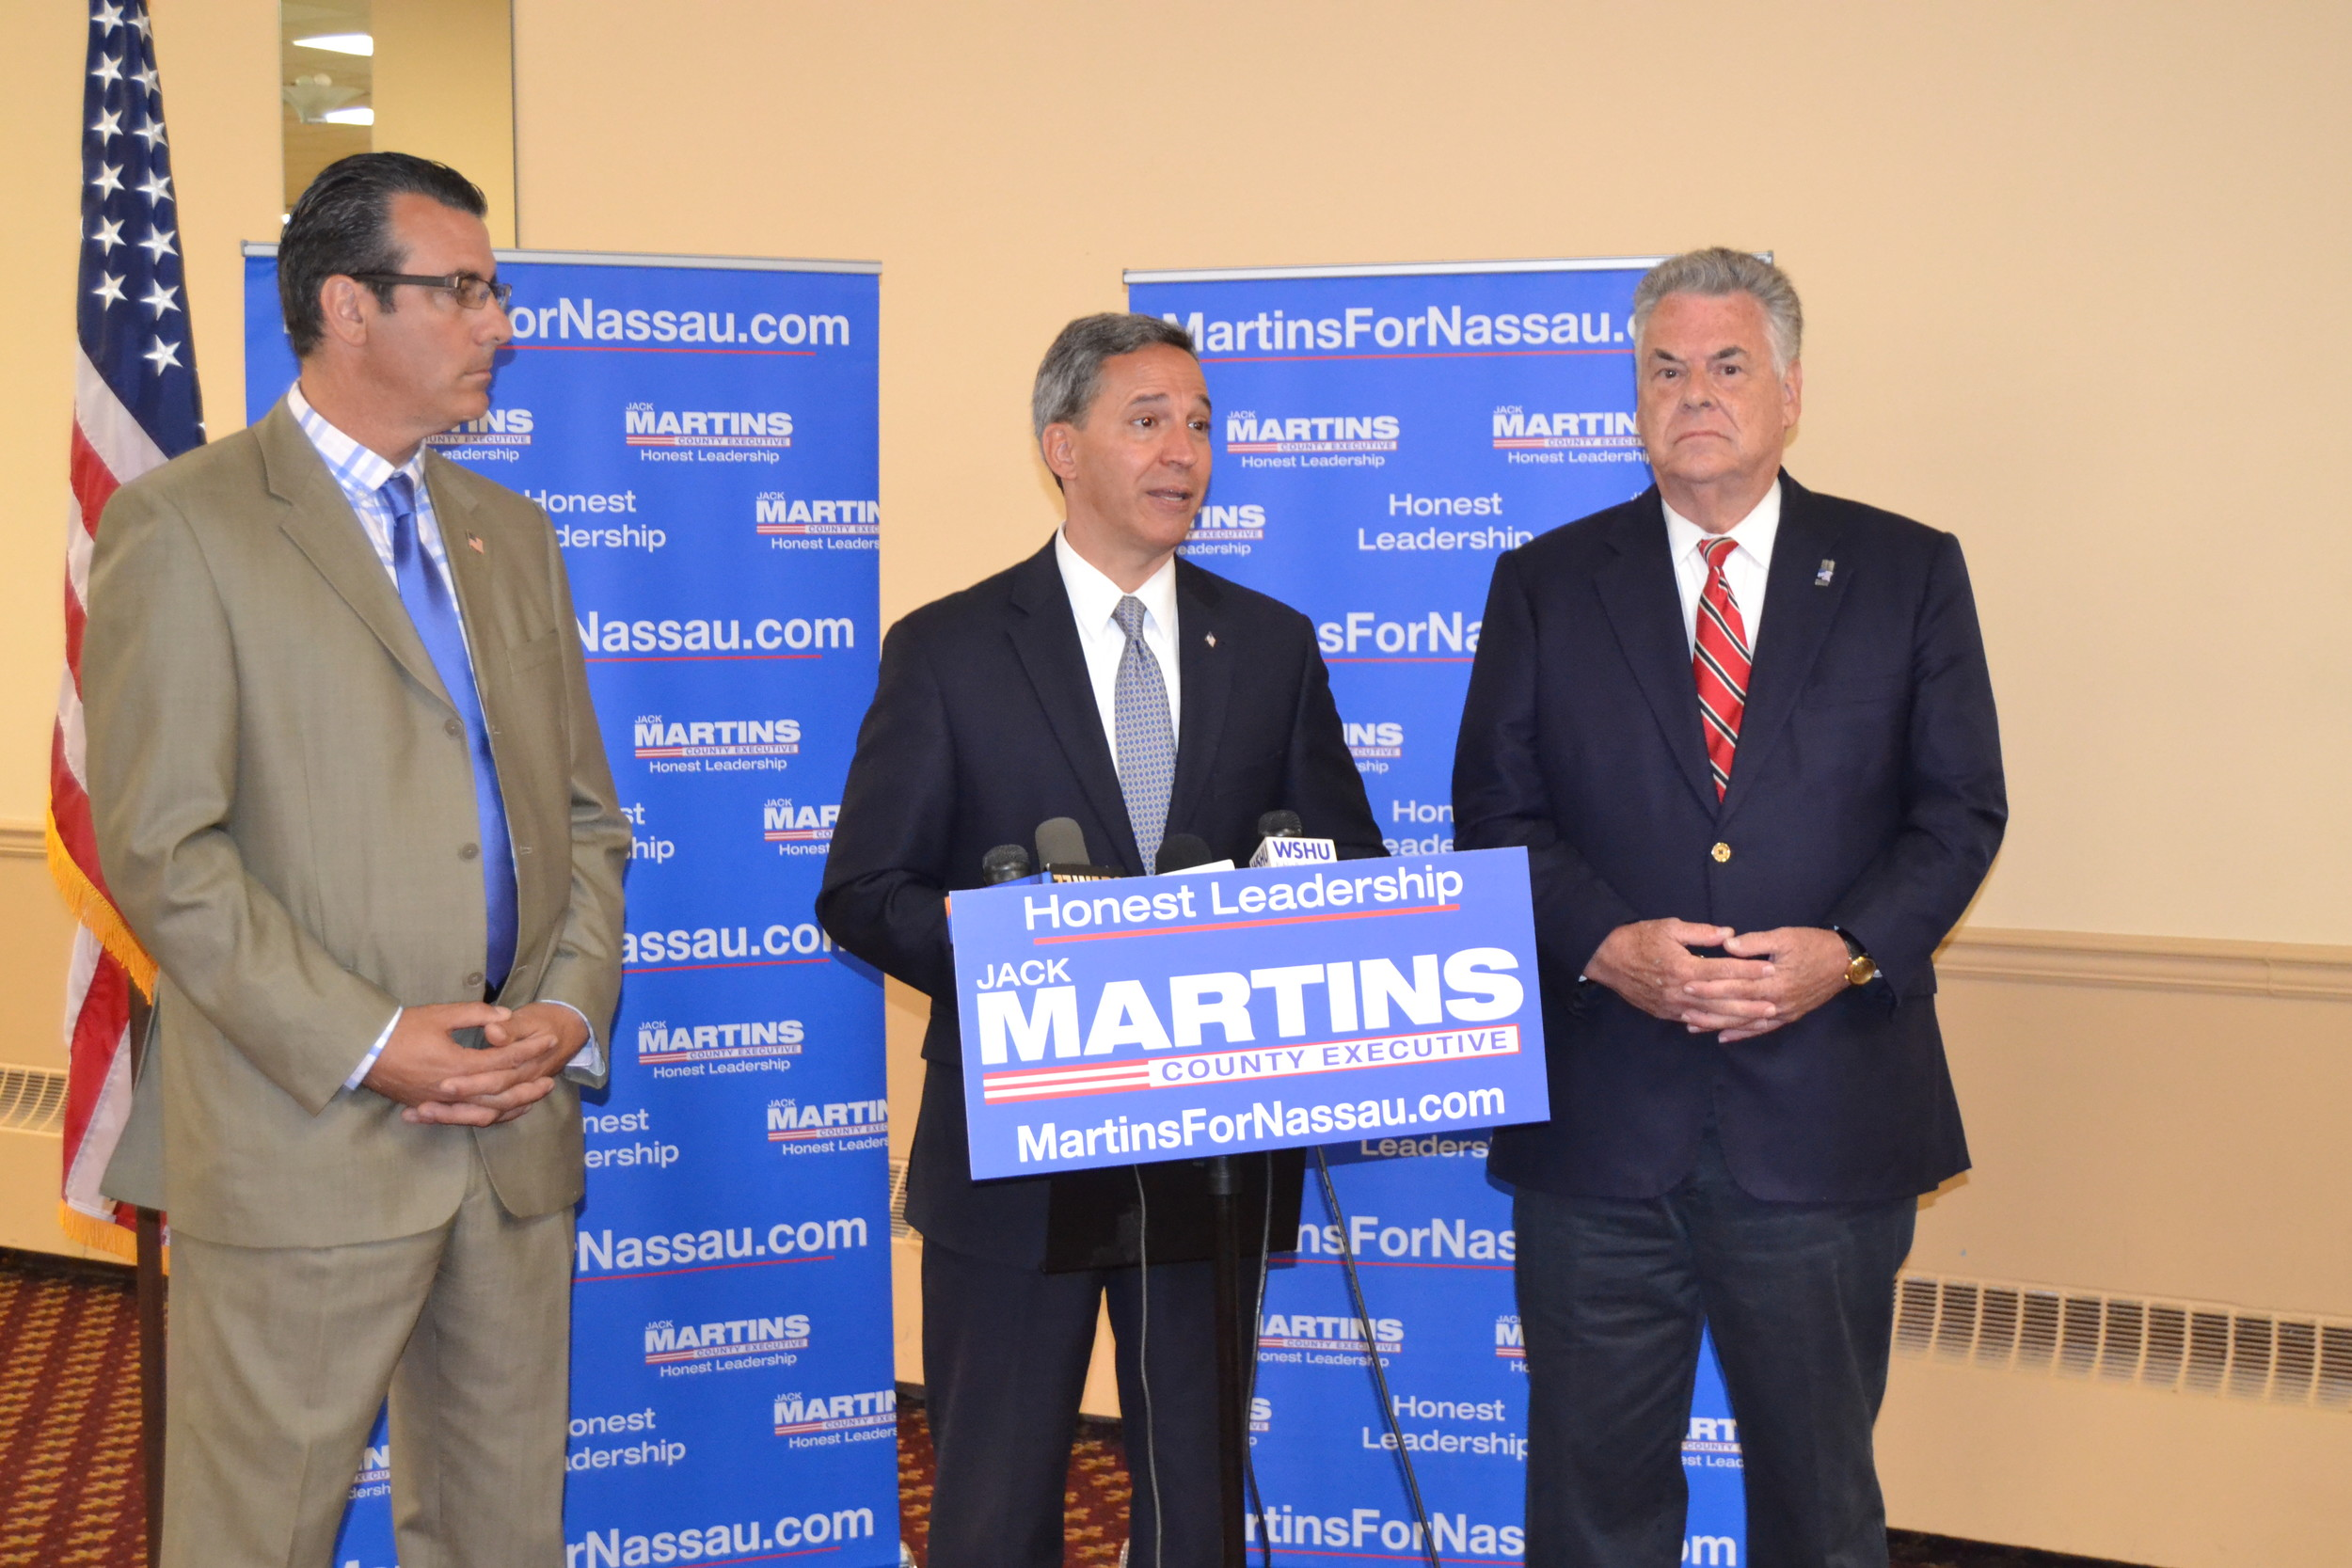 U.S. Rep. Peter King, far right, a Republican from Seaford, endorsed Jack Martins, center, for Nassau County executive. Massapequa Park Mayor Jeffrey Pravato, left, also attended the news conference about King's endorsement on July 5.